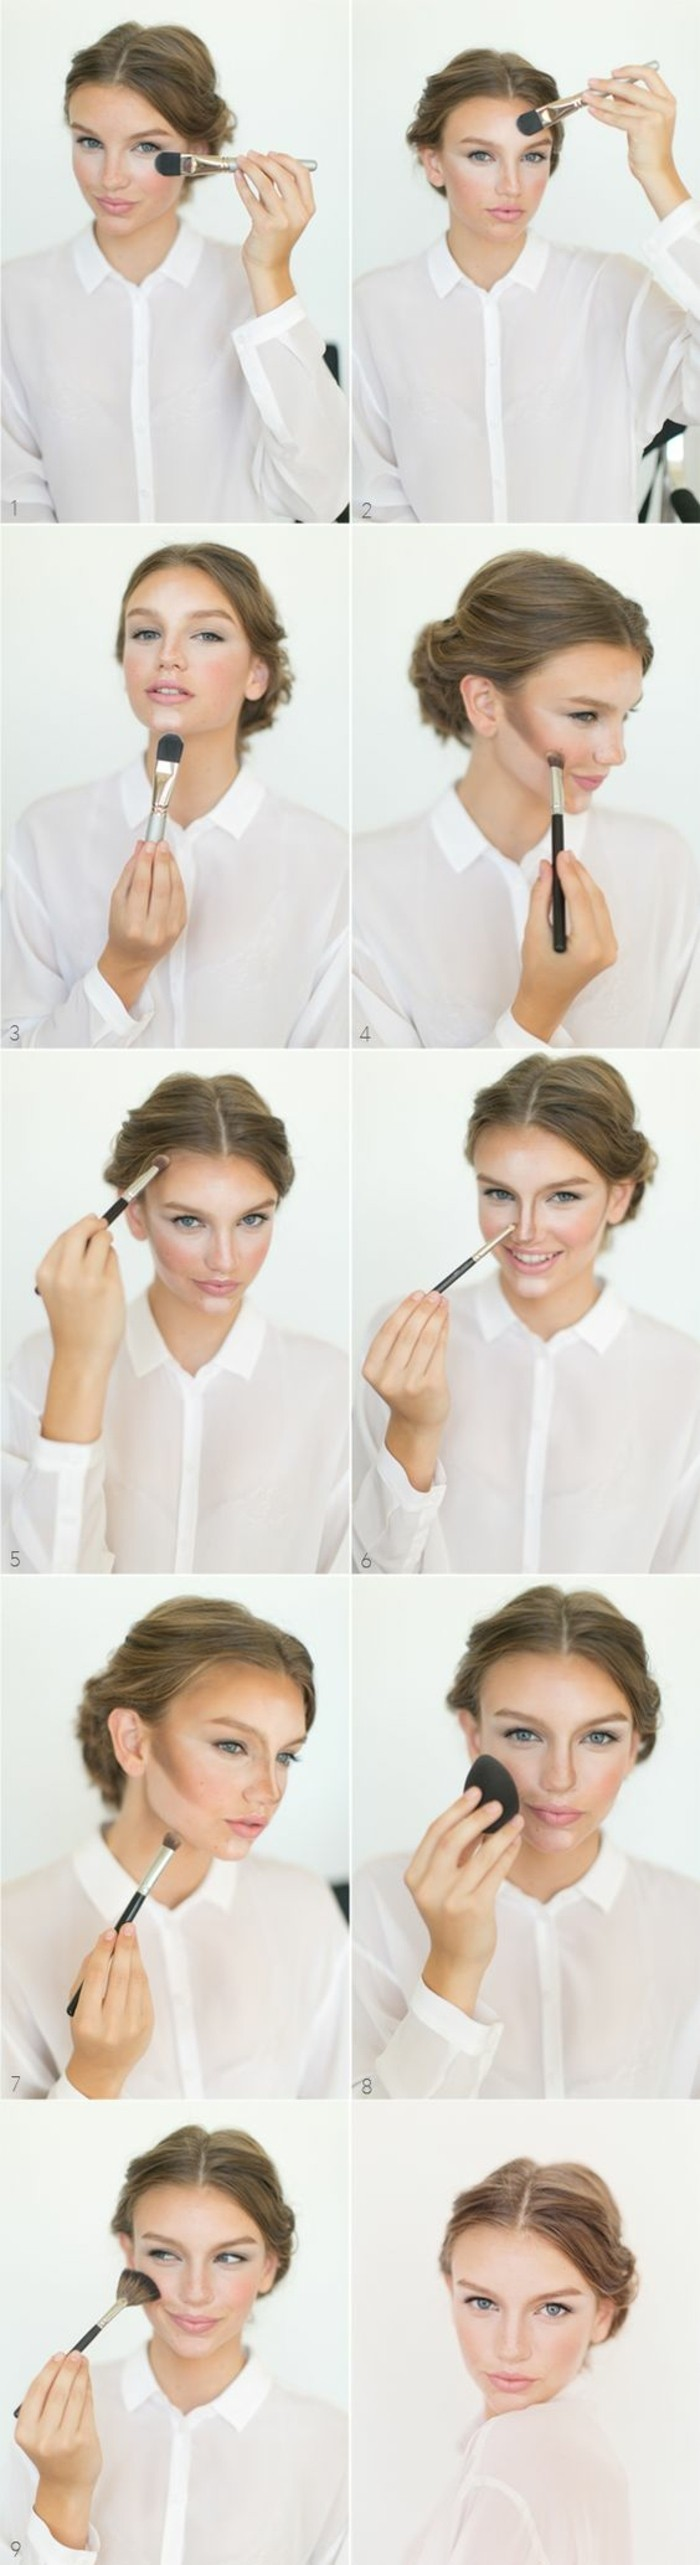 0-maquillage-discret-apprendre-a-se-maquiller-facilement-nos-idees-en-photos